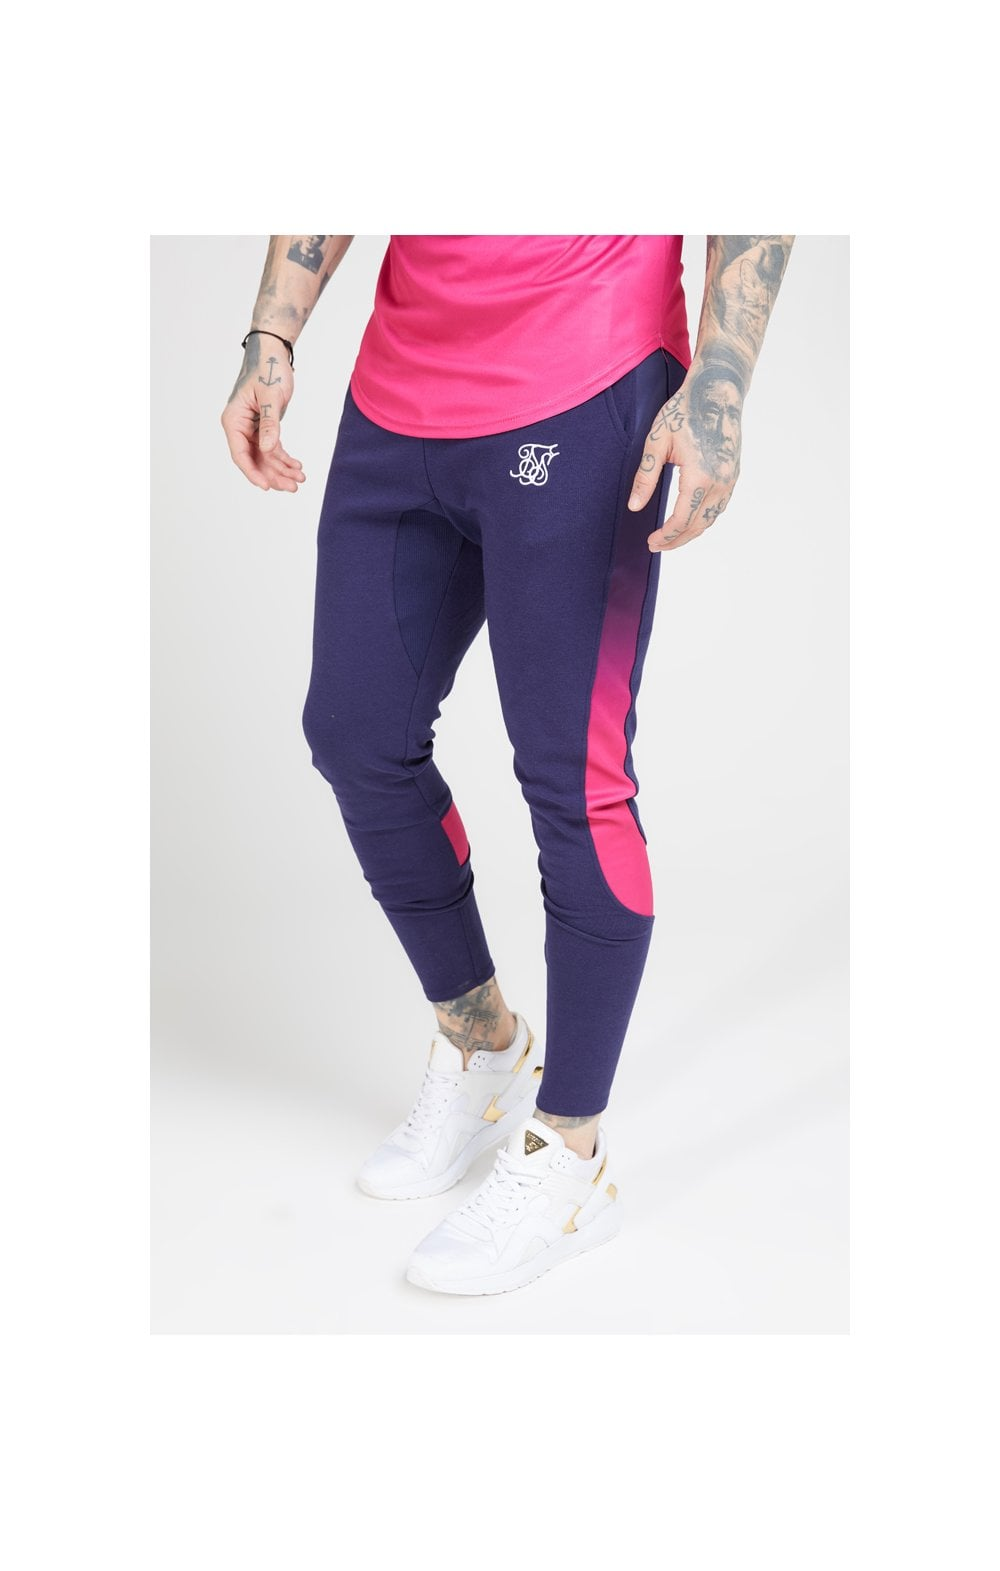 SikSilk Athlete Tech Fade Track Pants – Navy & Neon Fade